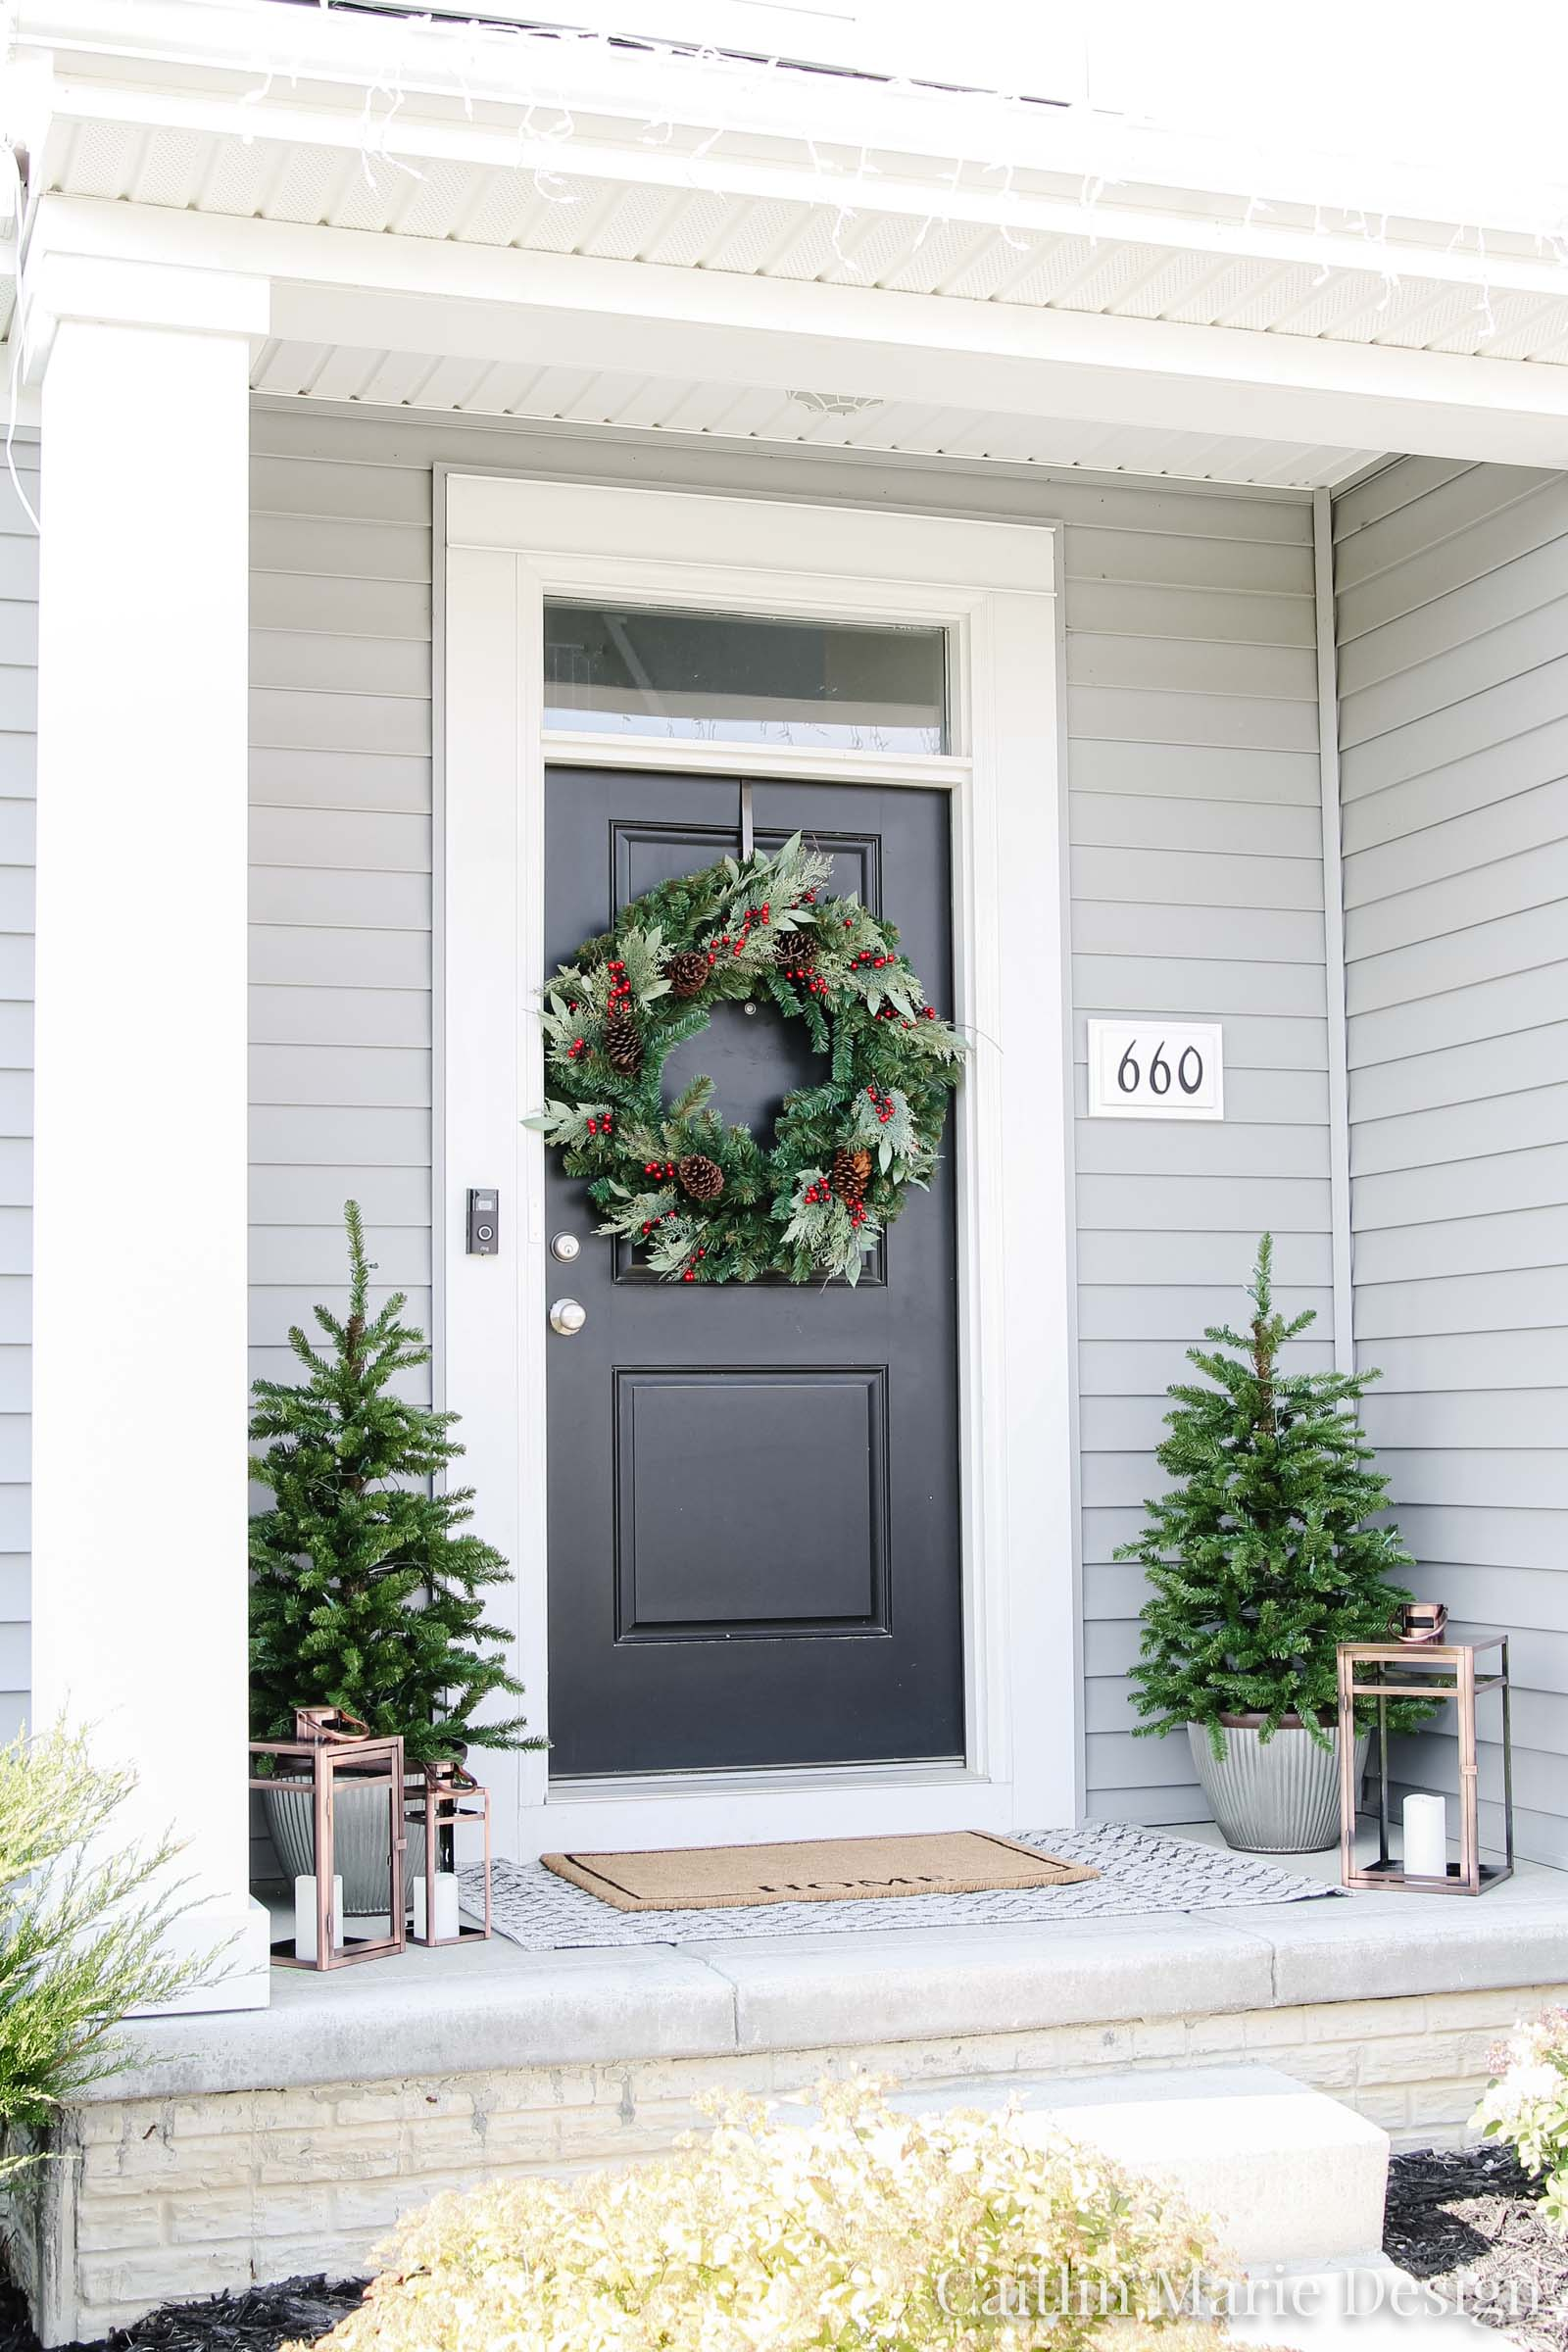 Holiday Front Porch Reveal - The Home Depot Style Challenge | black front door, large mixed pine wreath, small artificial Christmas trees, galvanized planters, welcome mat